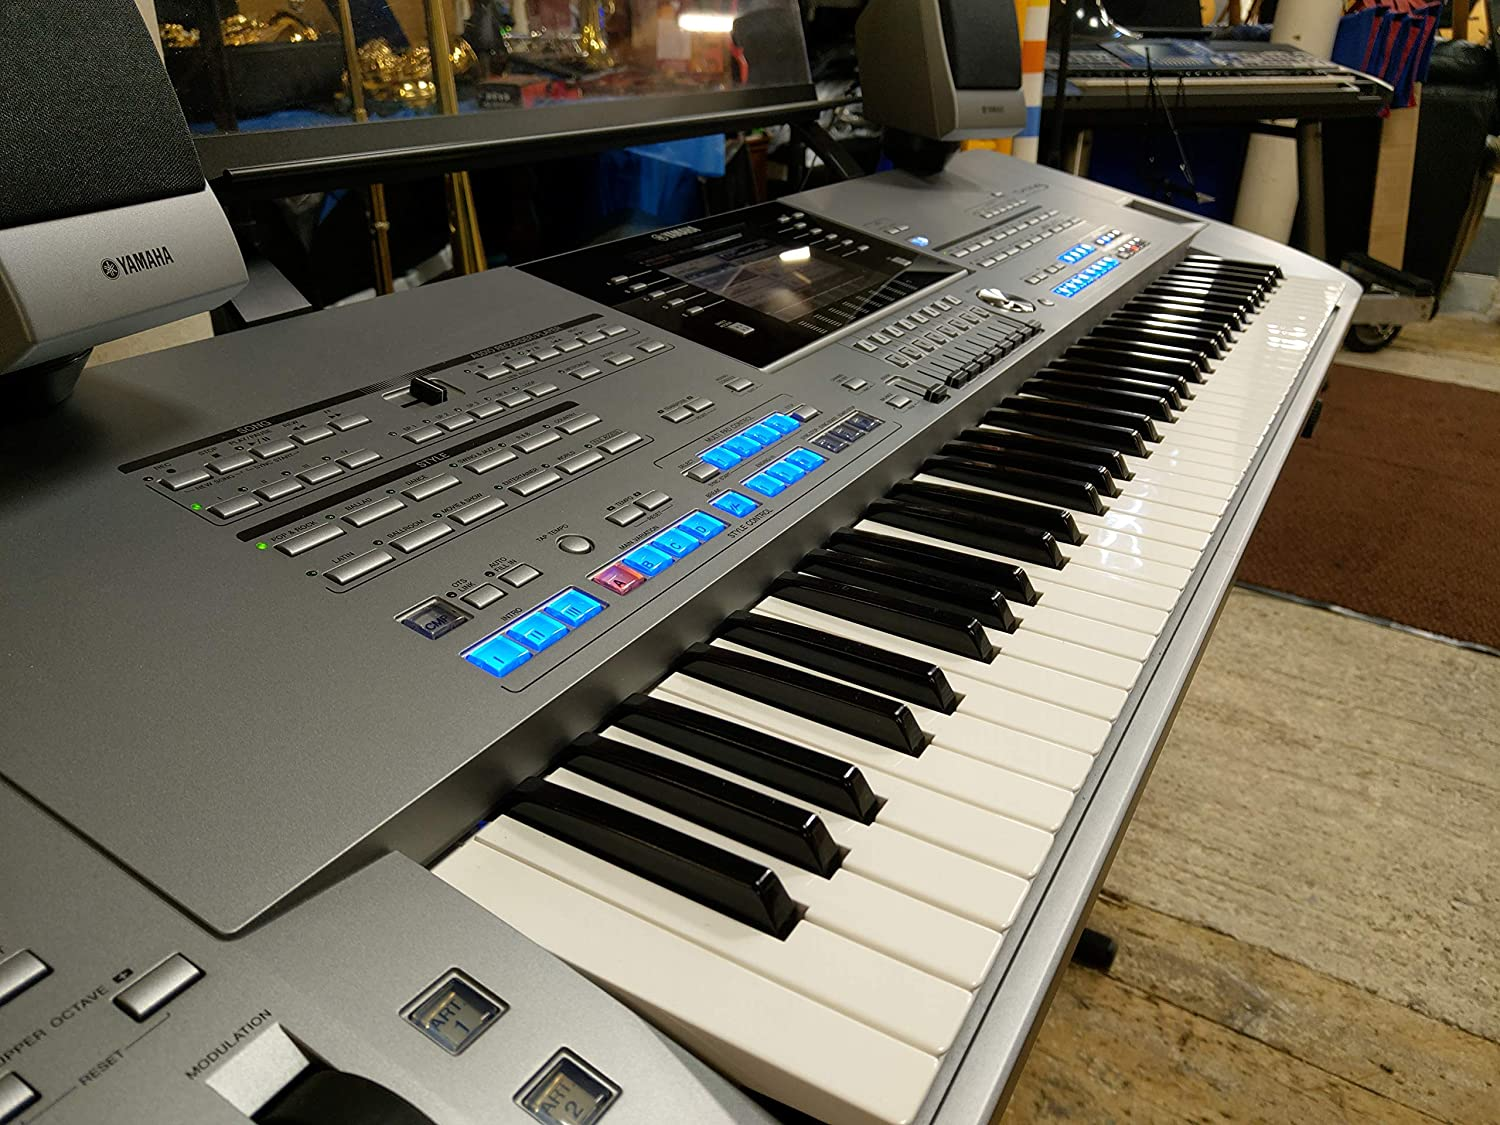 Yamaha Tyros 5 76 Note Keyboard Arranger Workstation - The